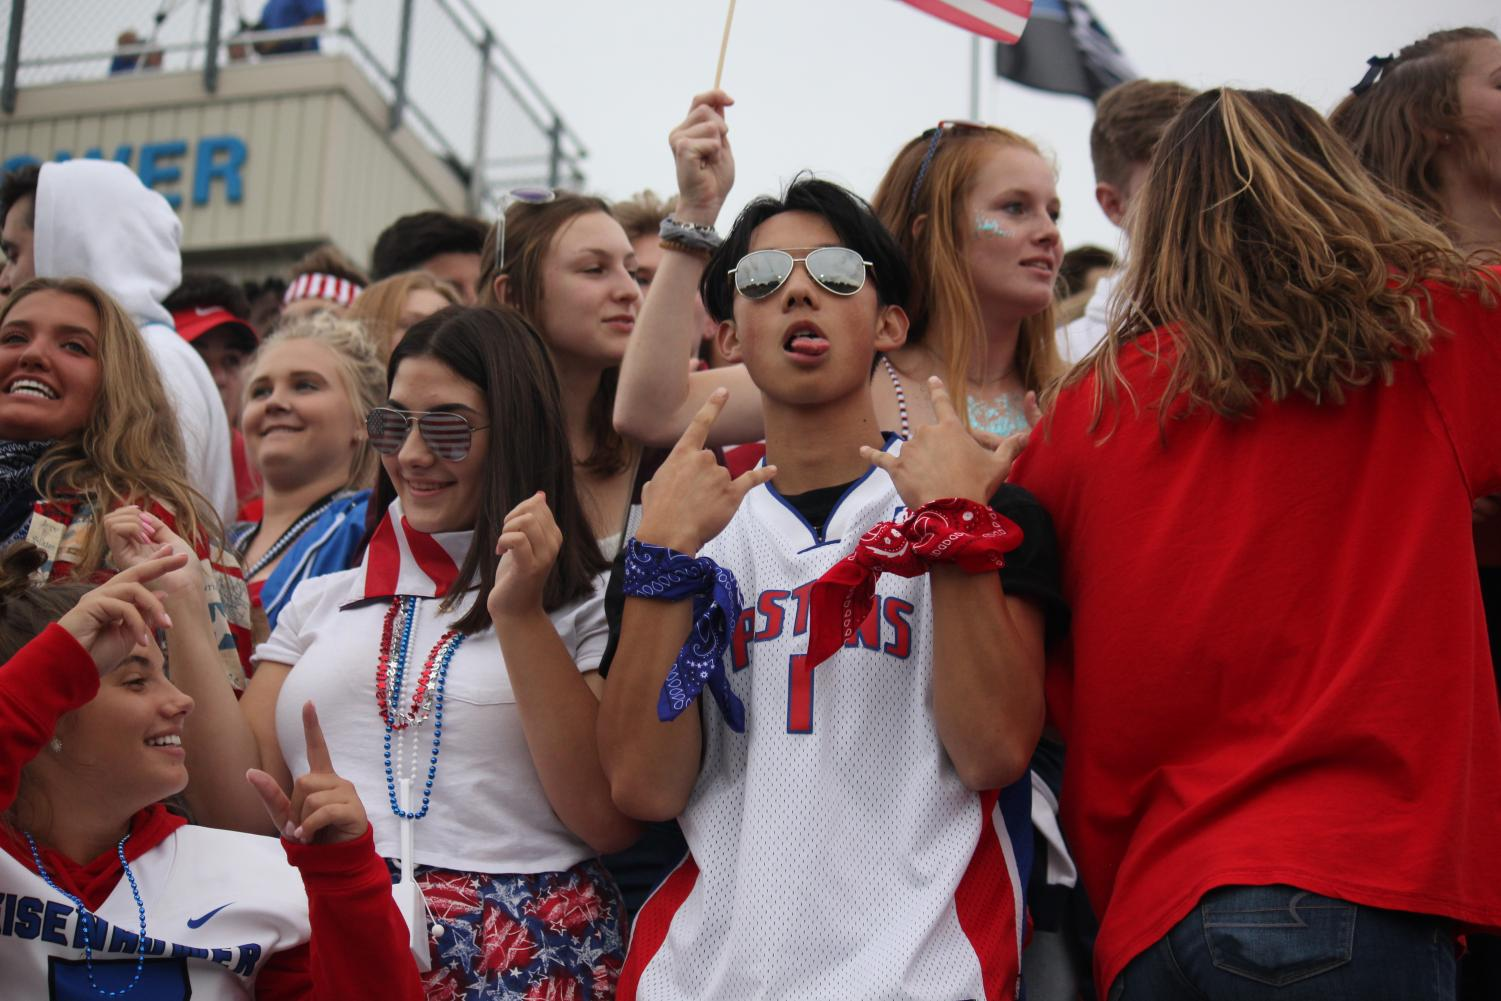 The student section at the Chippewa game shows their game day spirit.